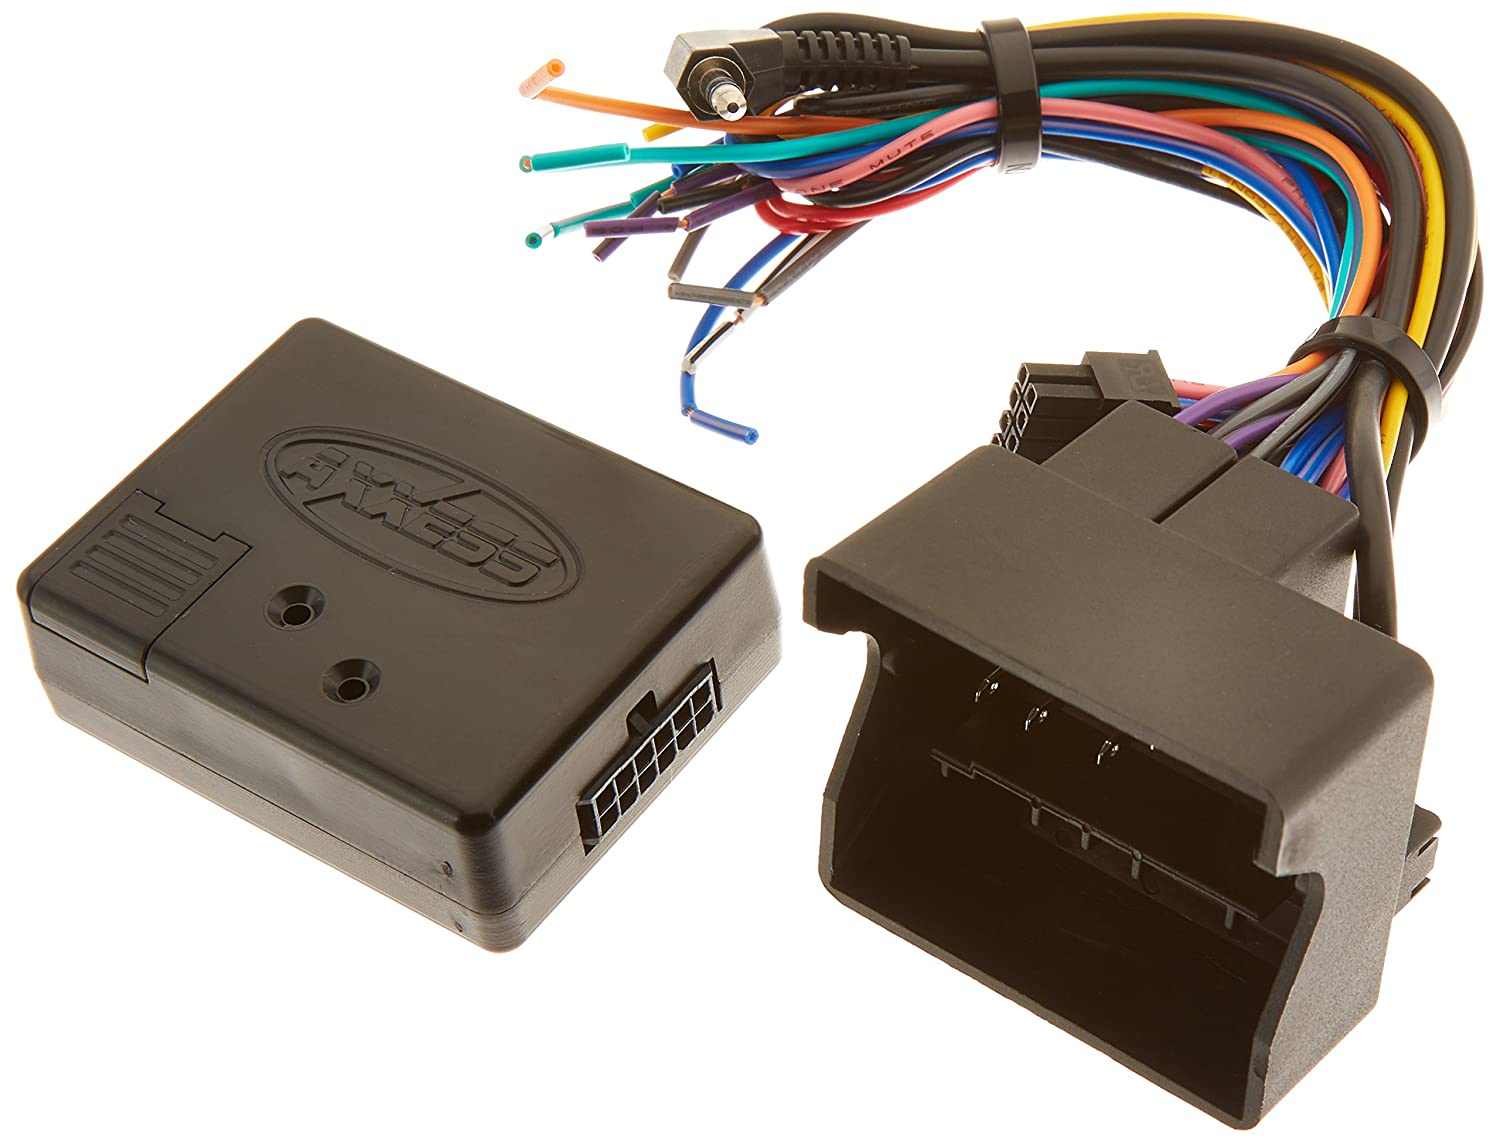 Amazon.com: XSVI-9005-NAV Wiring Interface -Allows you to connect a new car  stereo in select 2005-11 Mercedes-Benz vehicles: Car Electronics